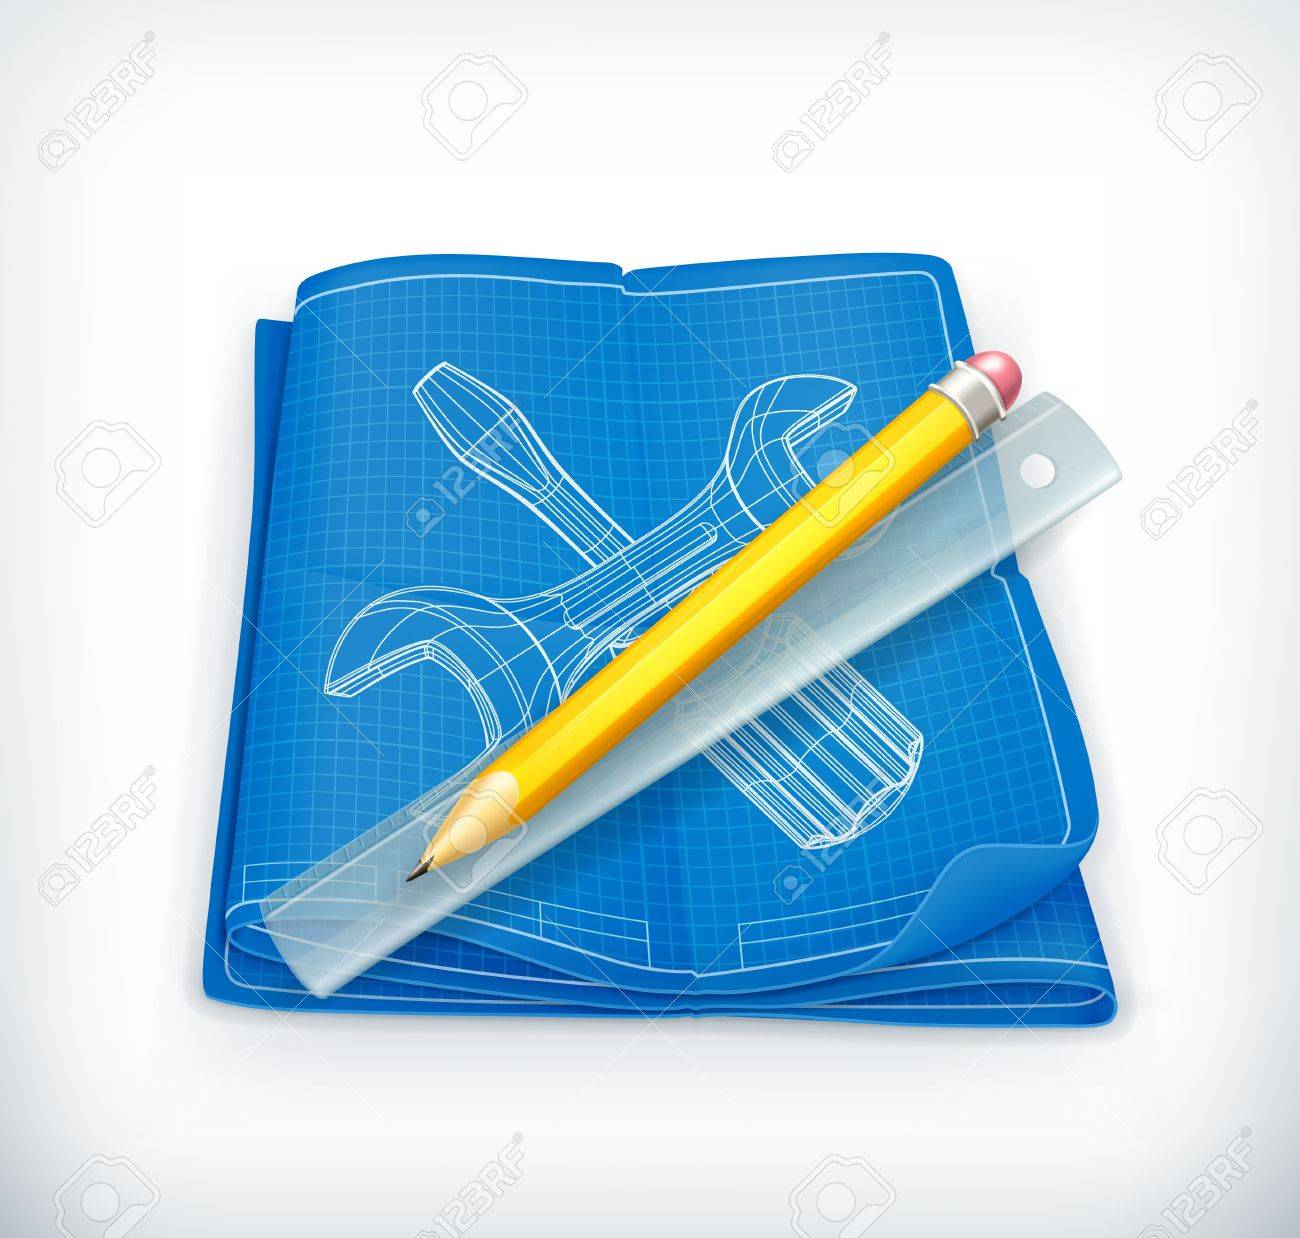 Technical drawing icon Stock Vector - 13900007